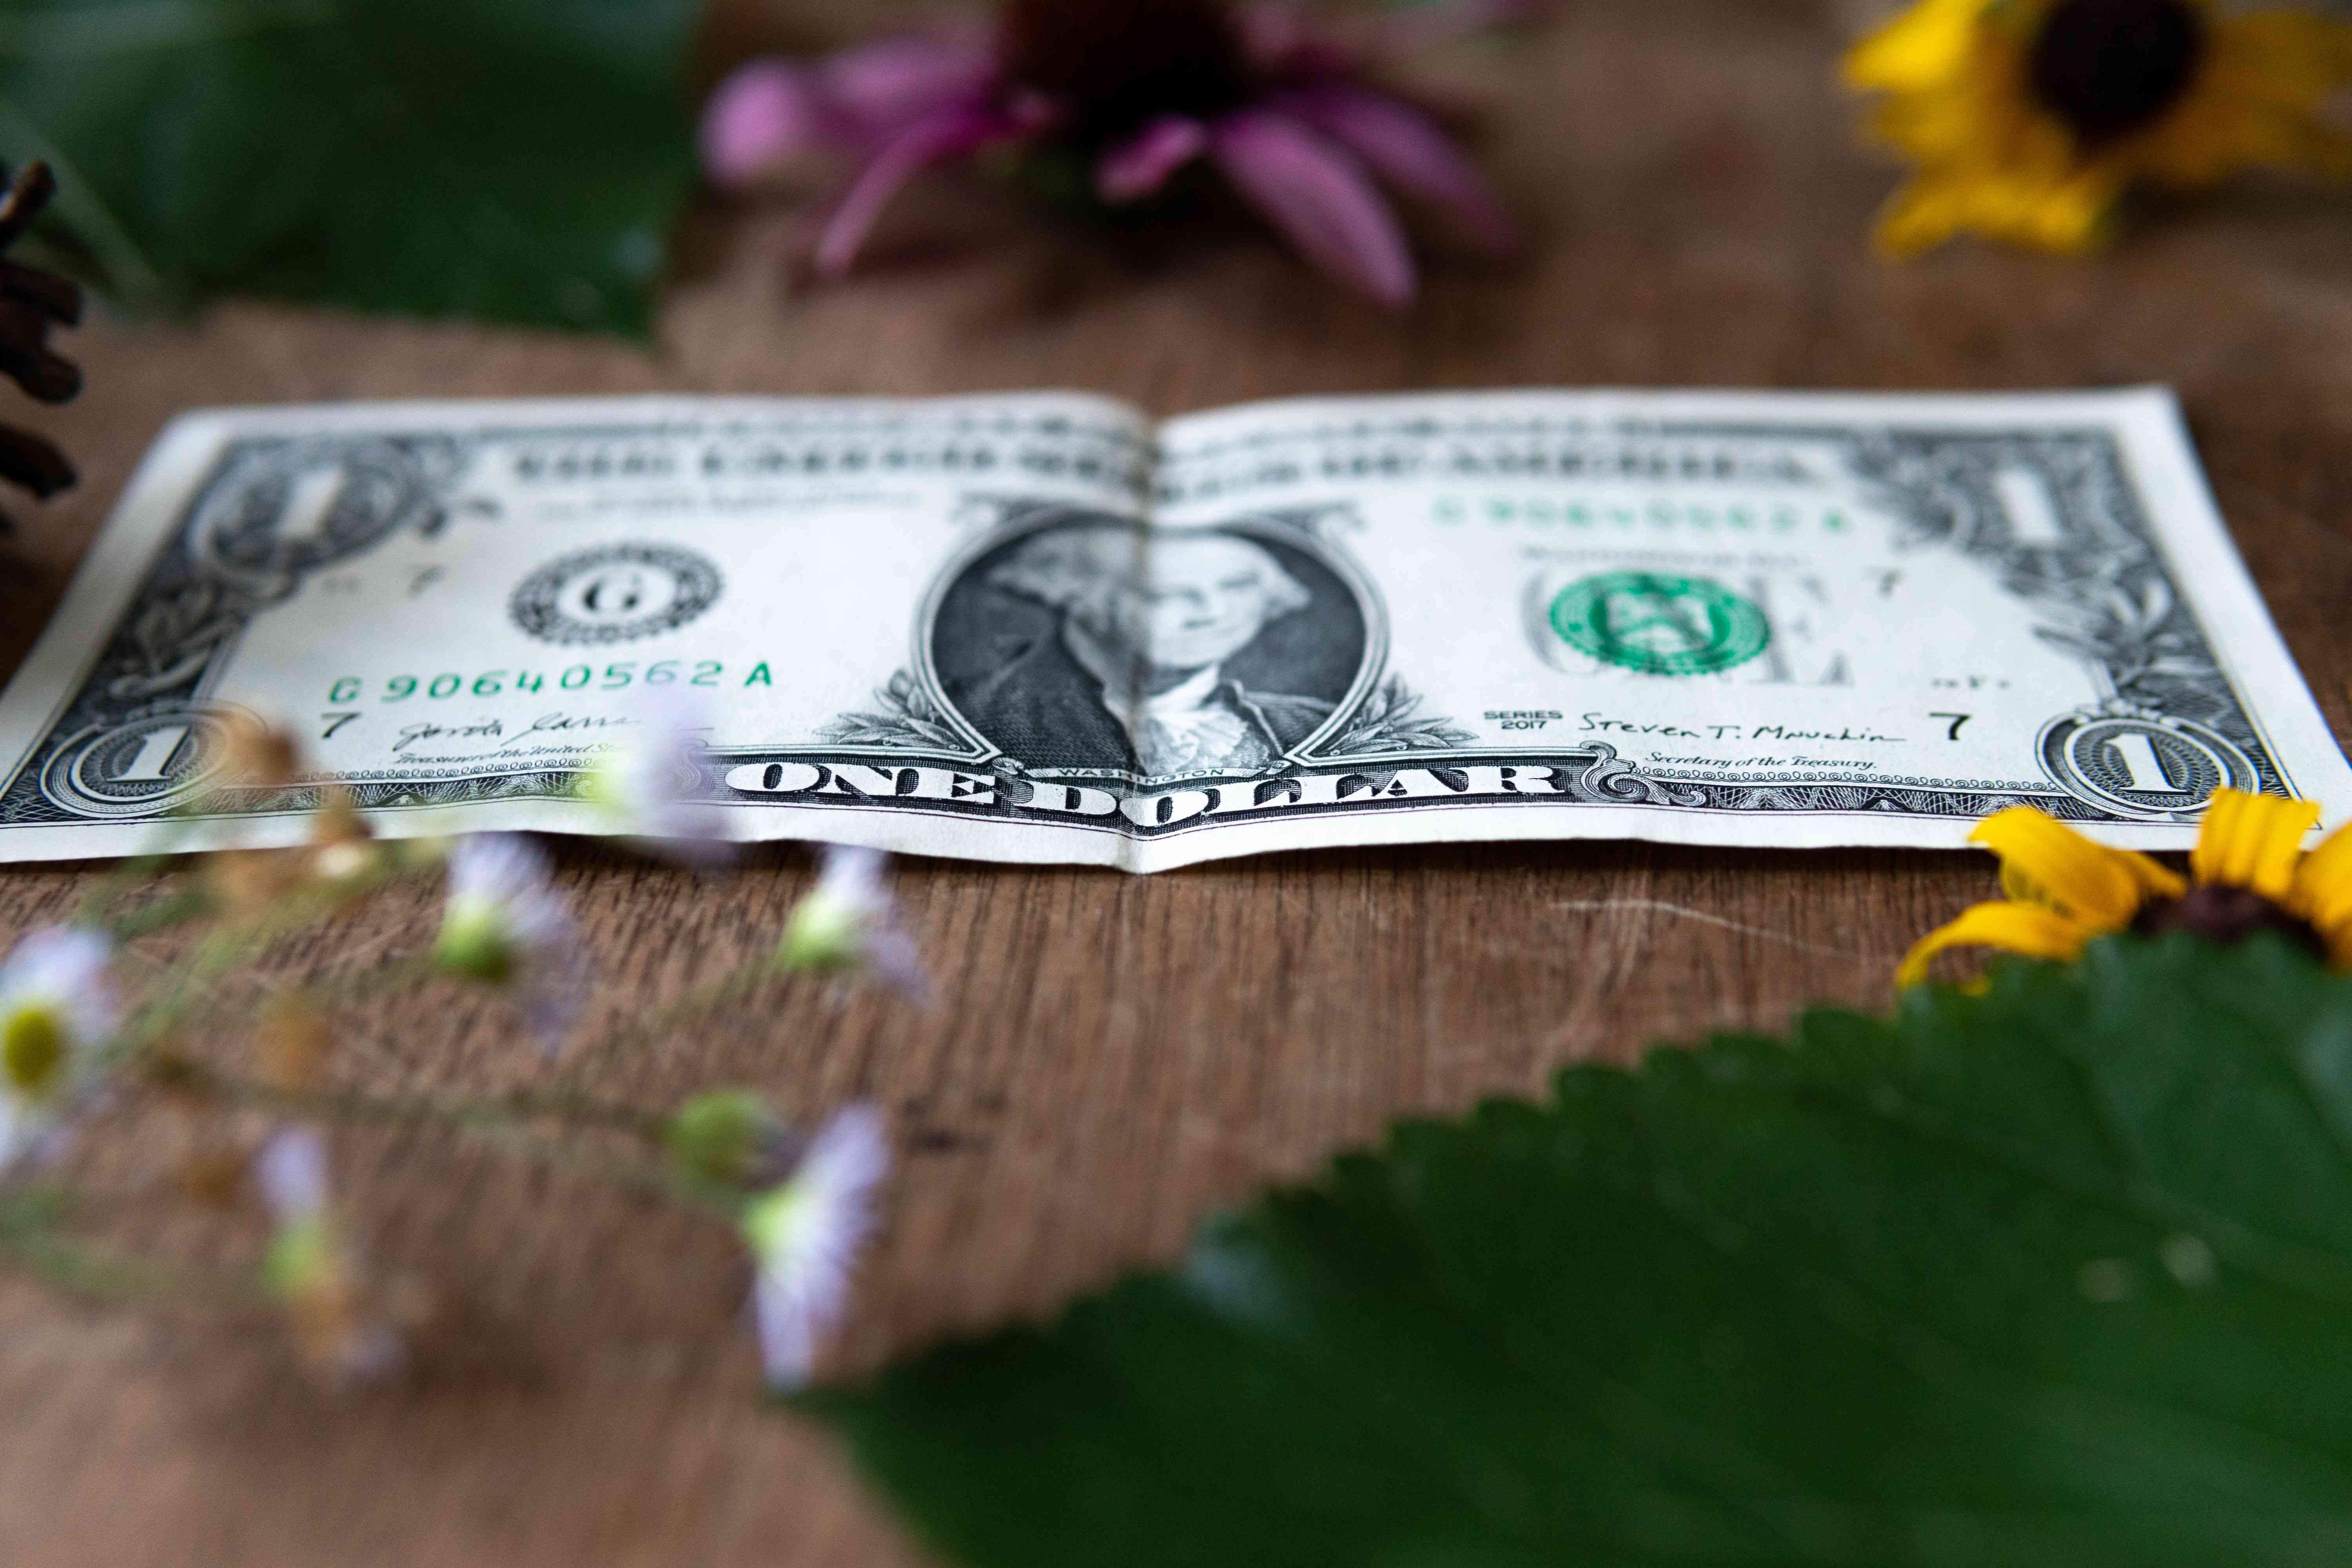 dollar bill on wooden table surrounded by plants and flowers